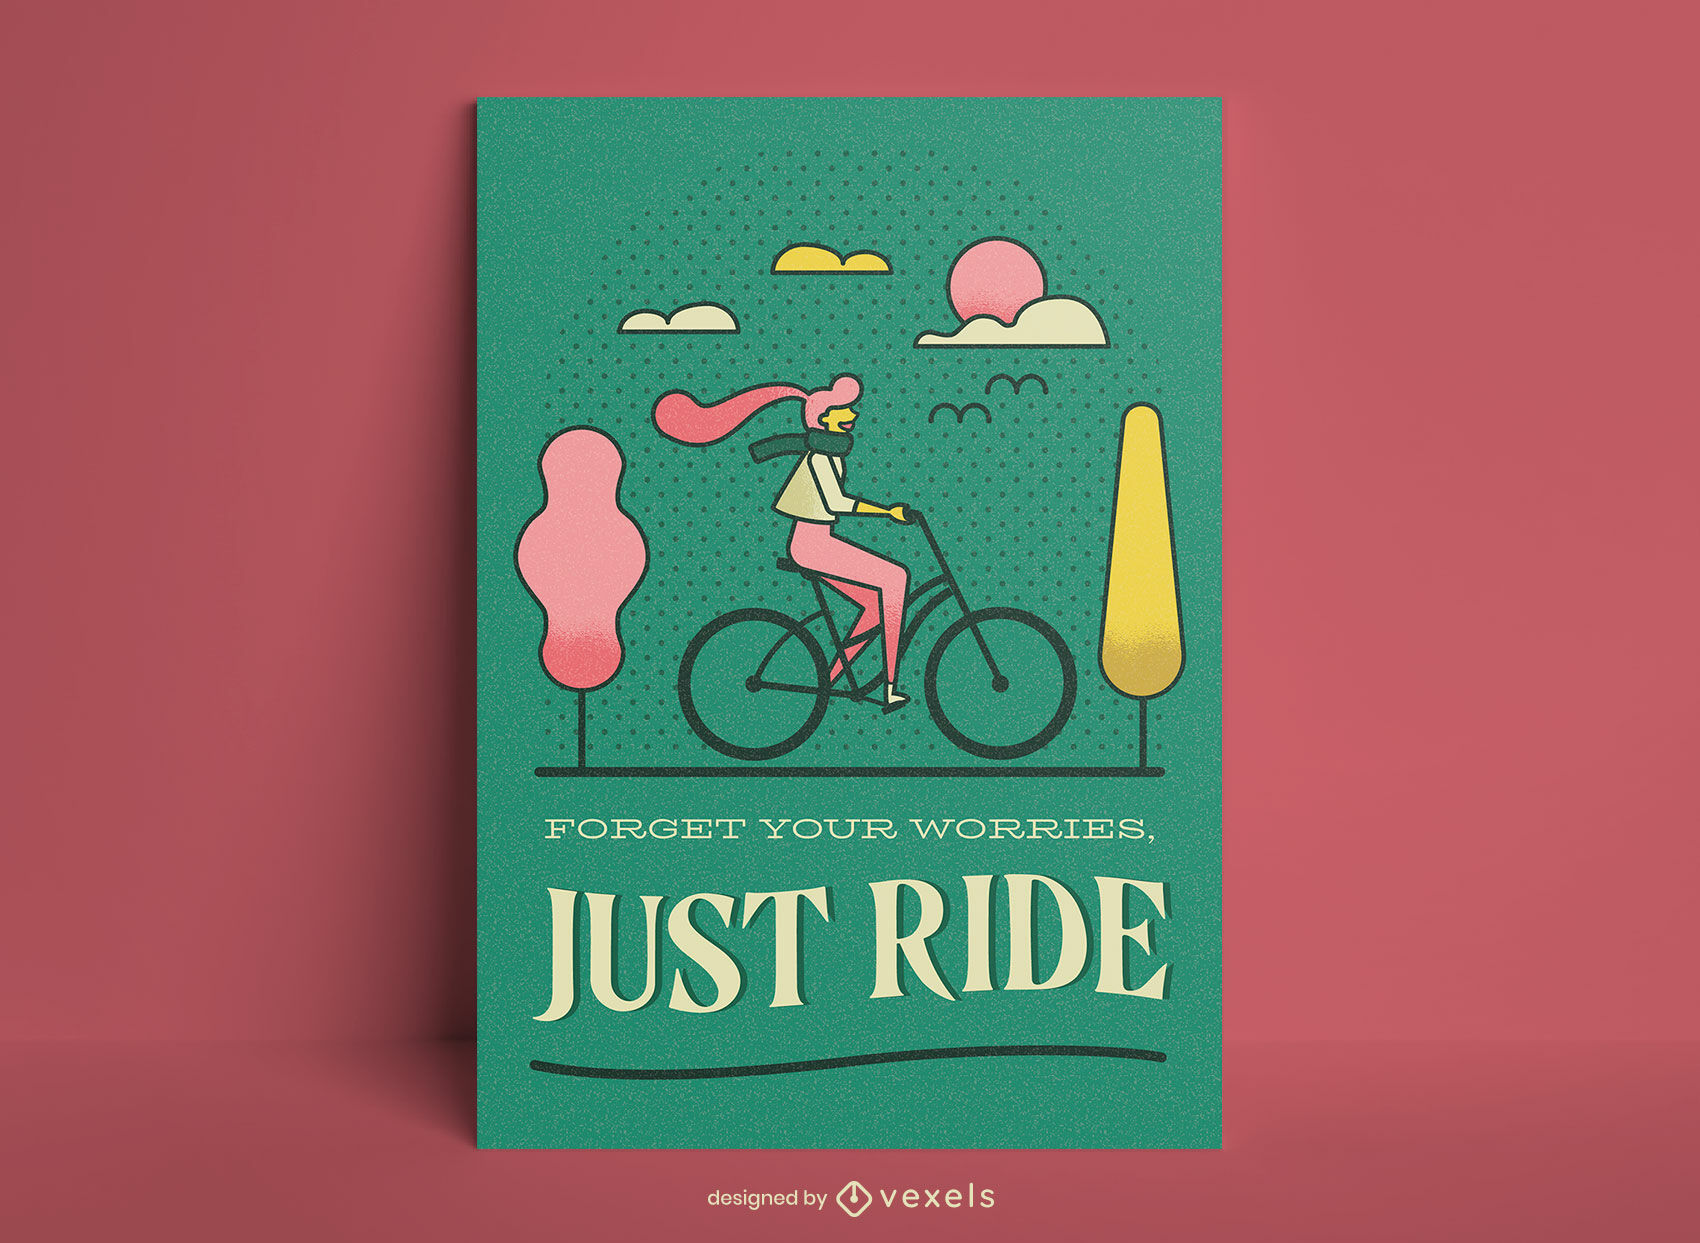 Just ride cycling poster